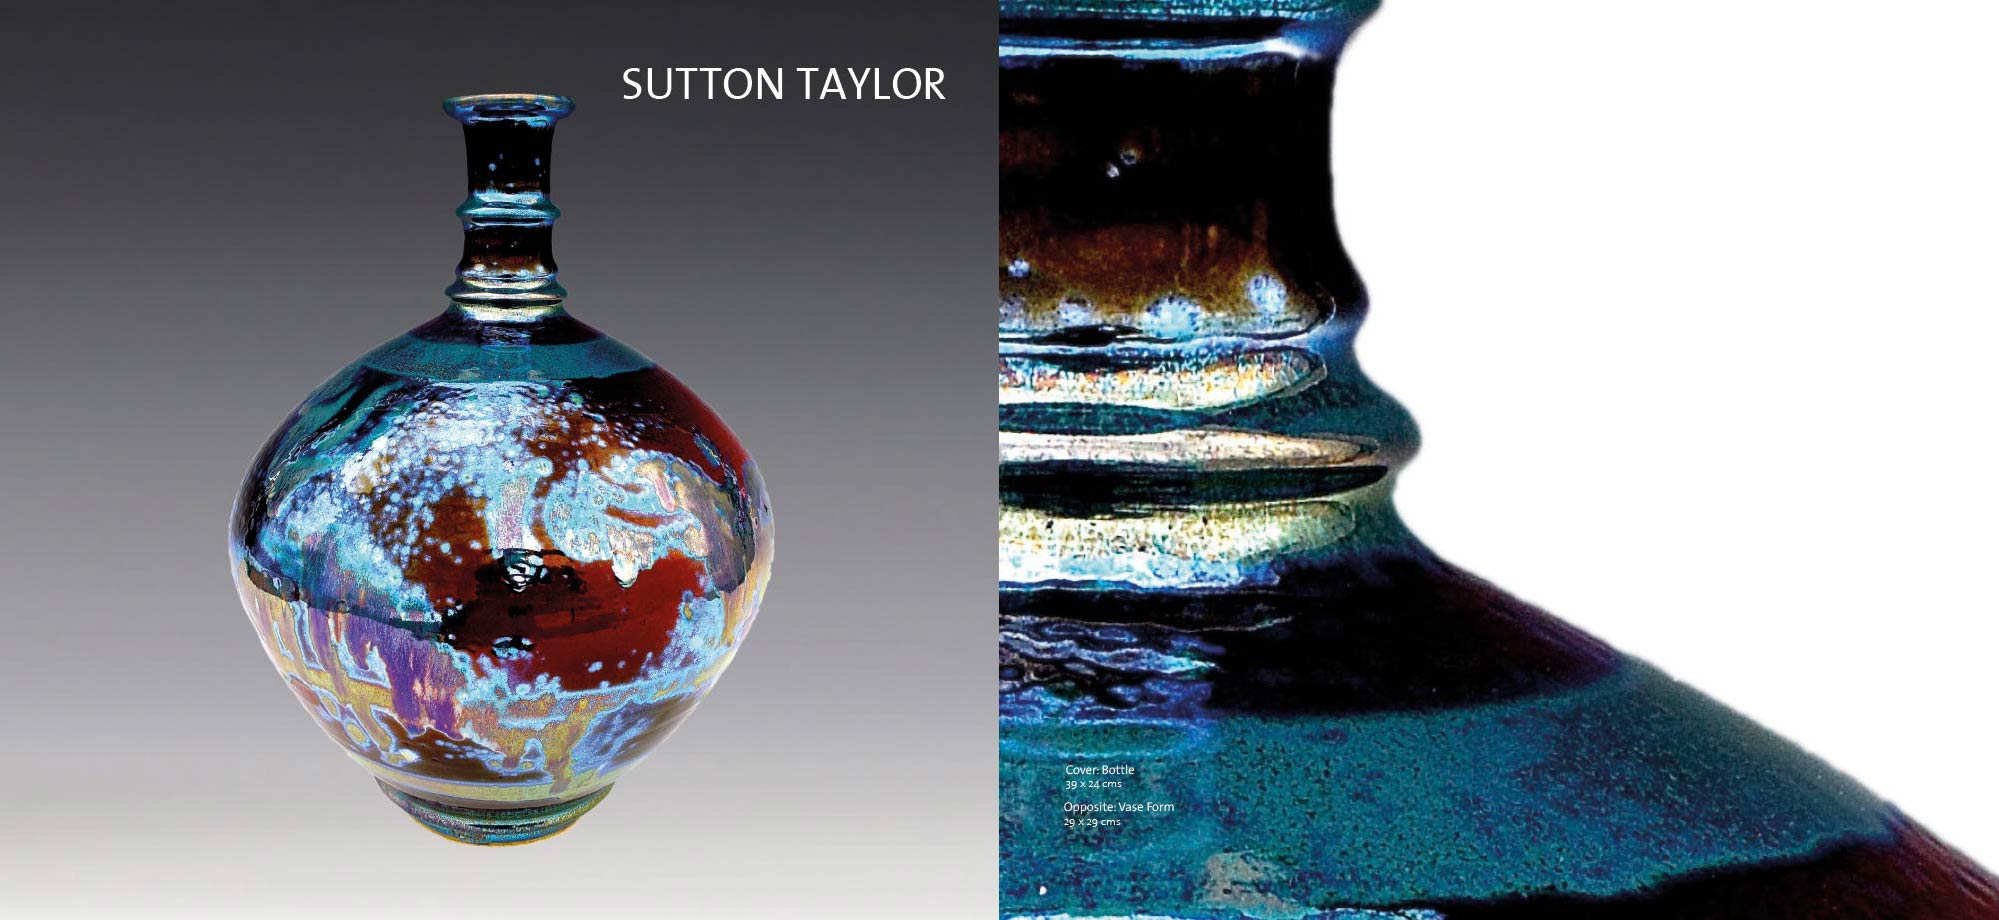 Sutton Taylor Alchemy publication image